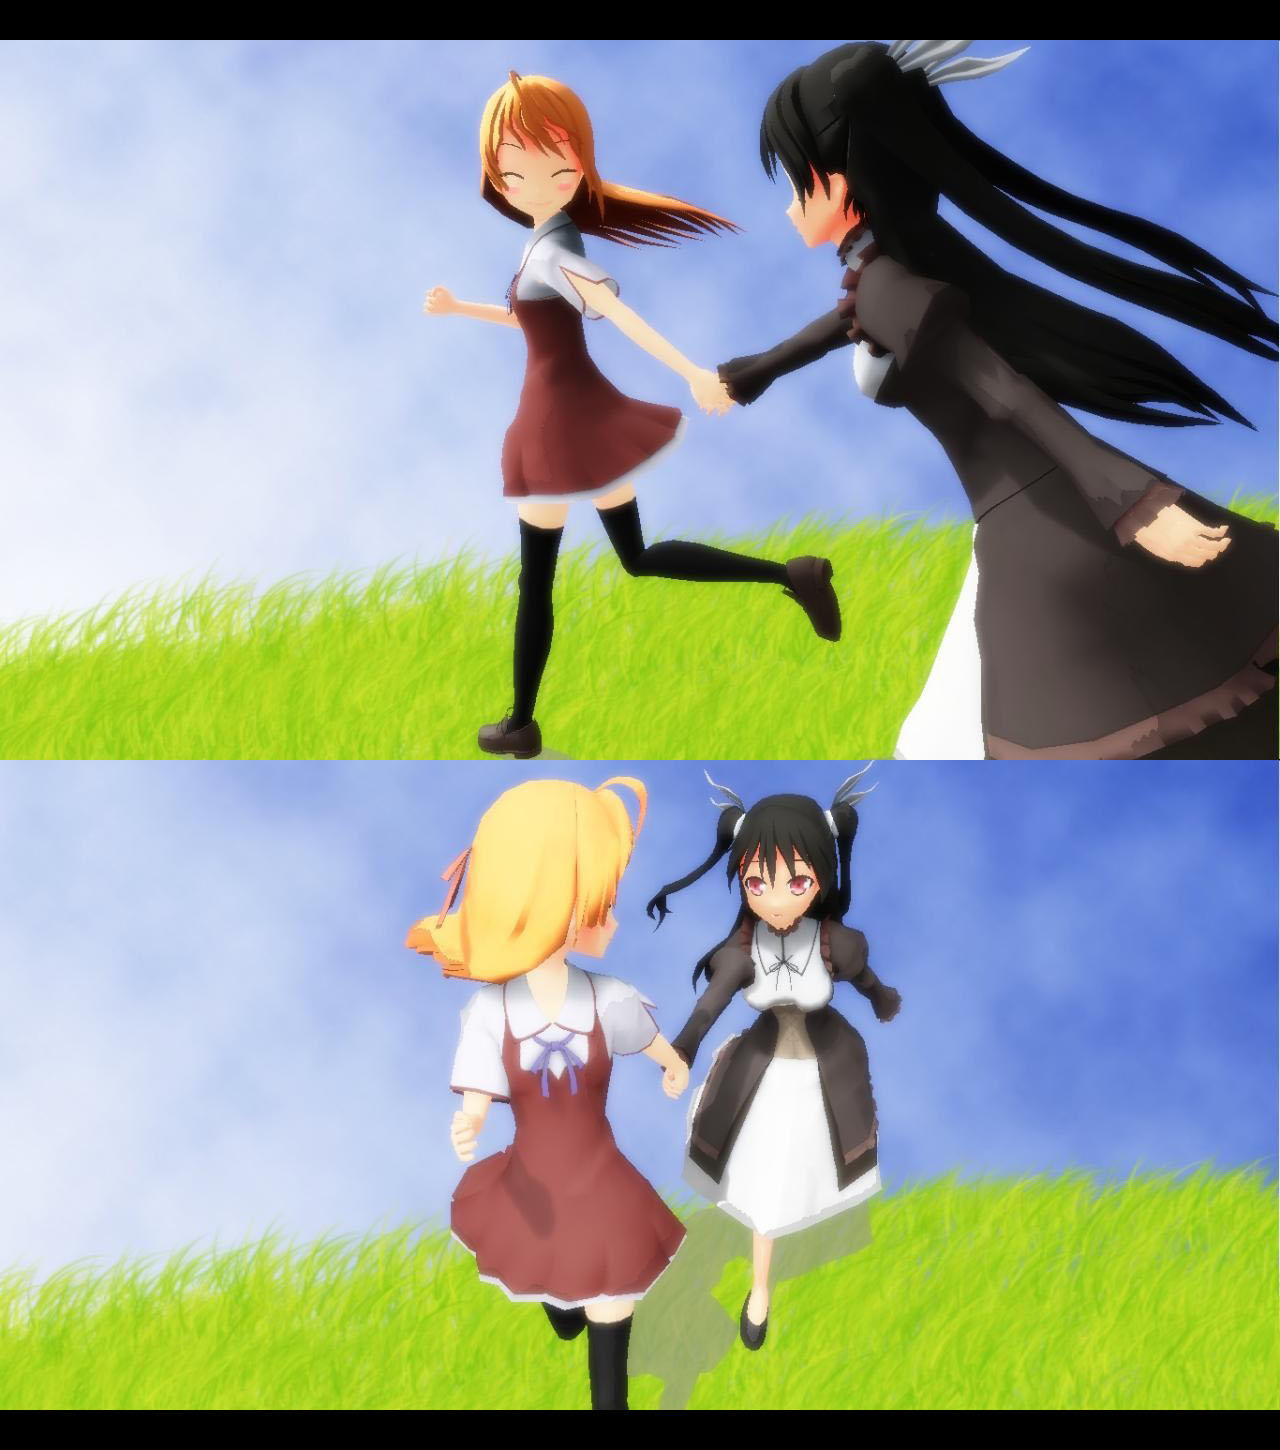 Anime Characters Running : Running pose by g u on deviantart